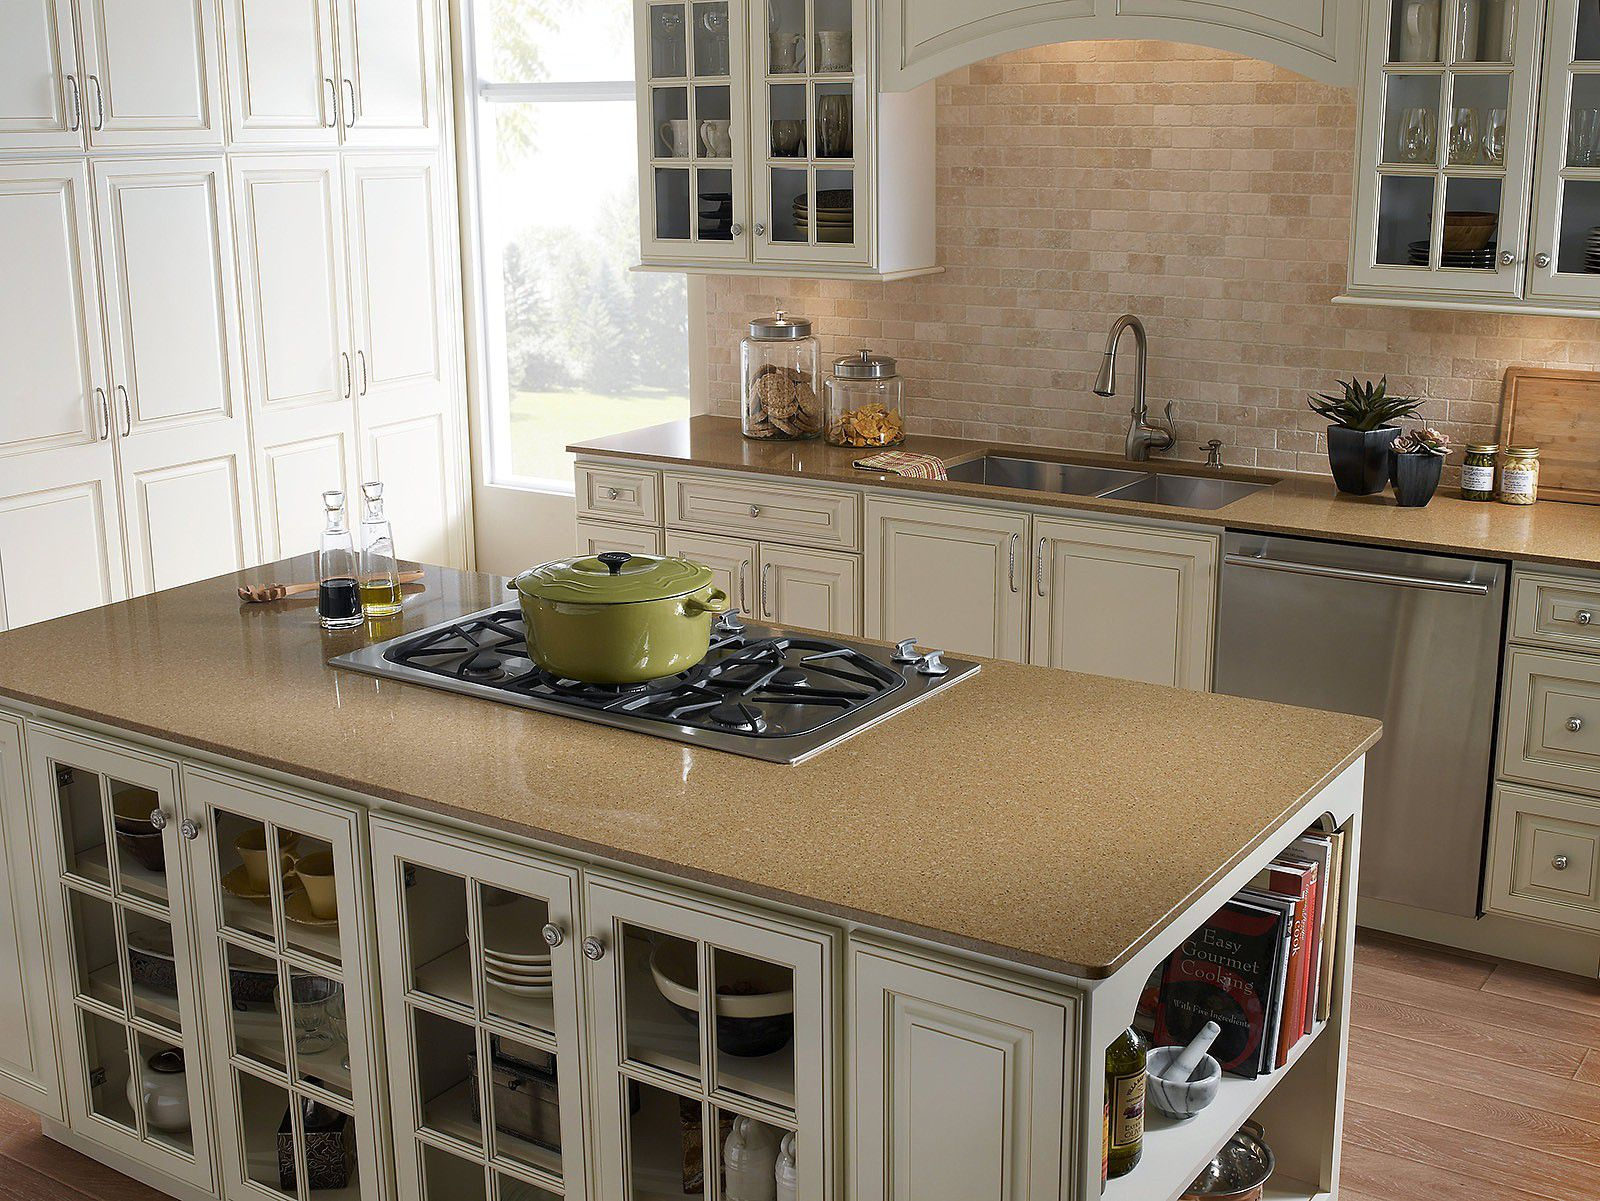 Can You Paint Corian Countertops Repairing A Cracked Solid Surface Countertop